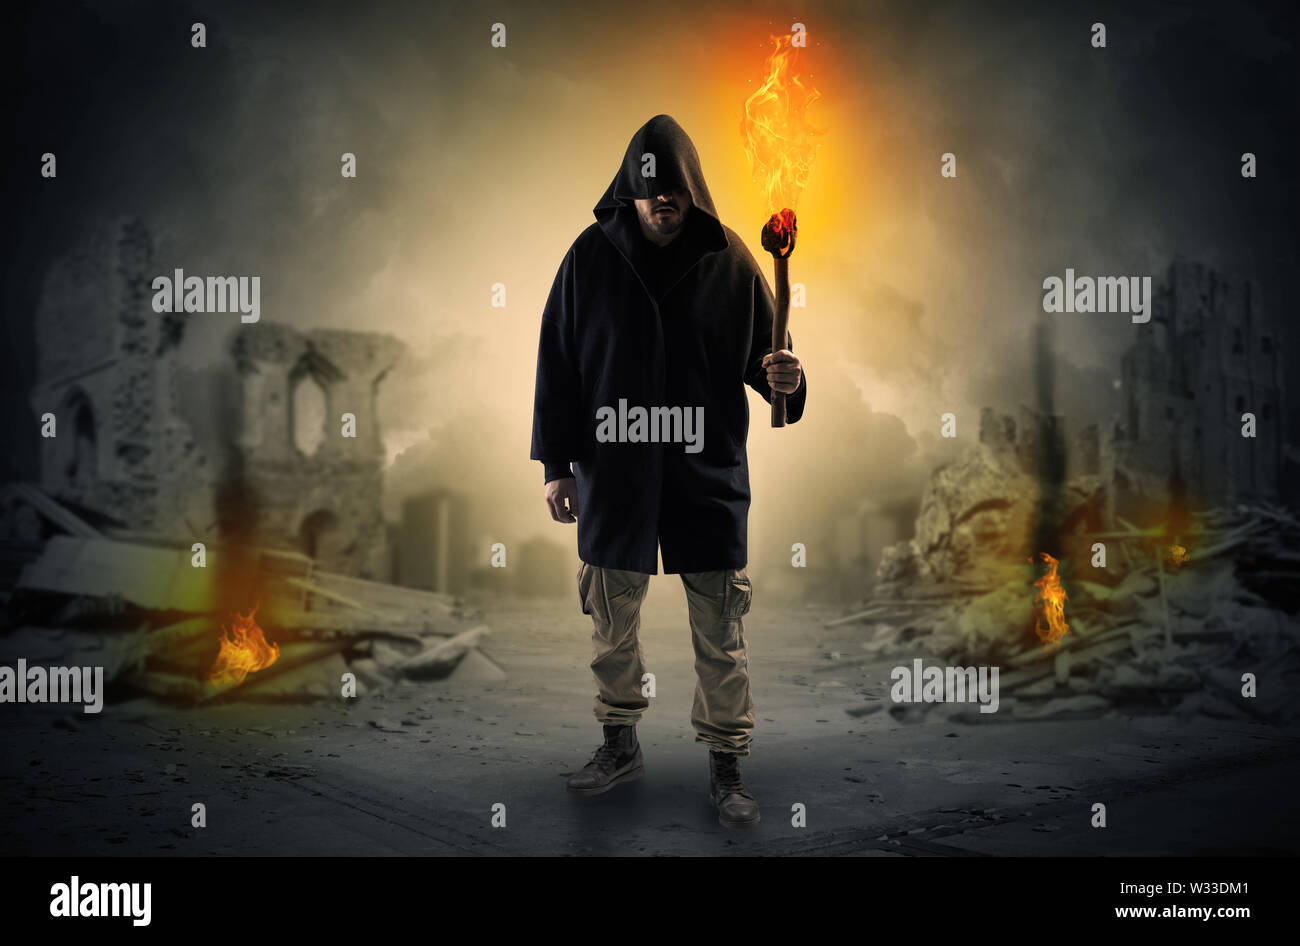 Destroyed place after a catastrophe with man and burning flambeau concept - Stock Image